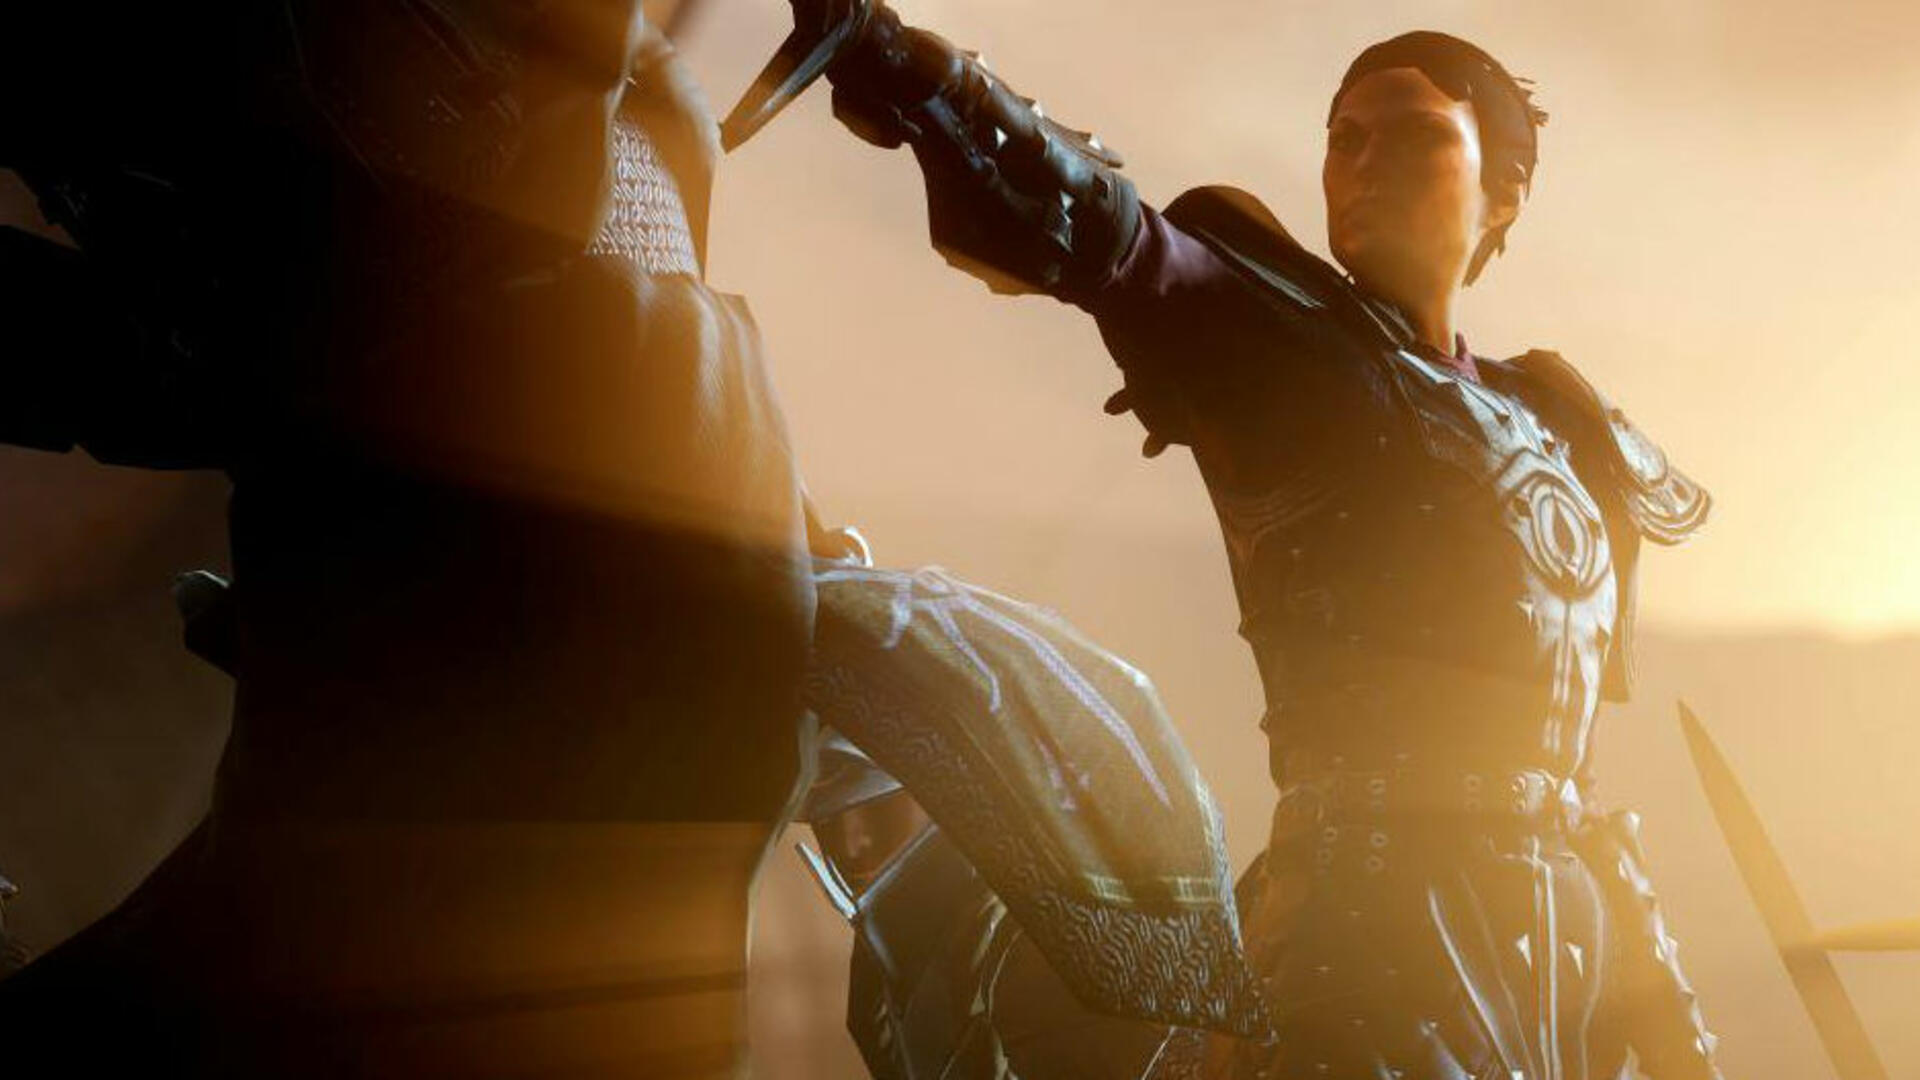 Dragon Age: Inquisition Review-in-Progress: Bob and Kat Enter the Breach